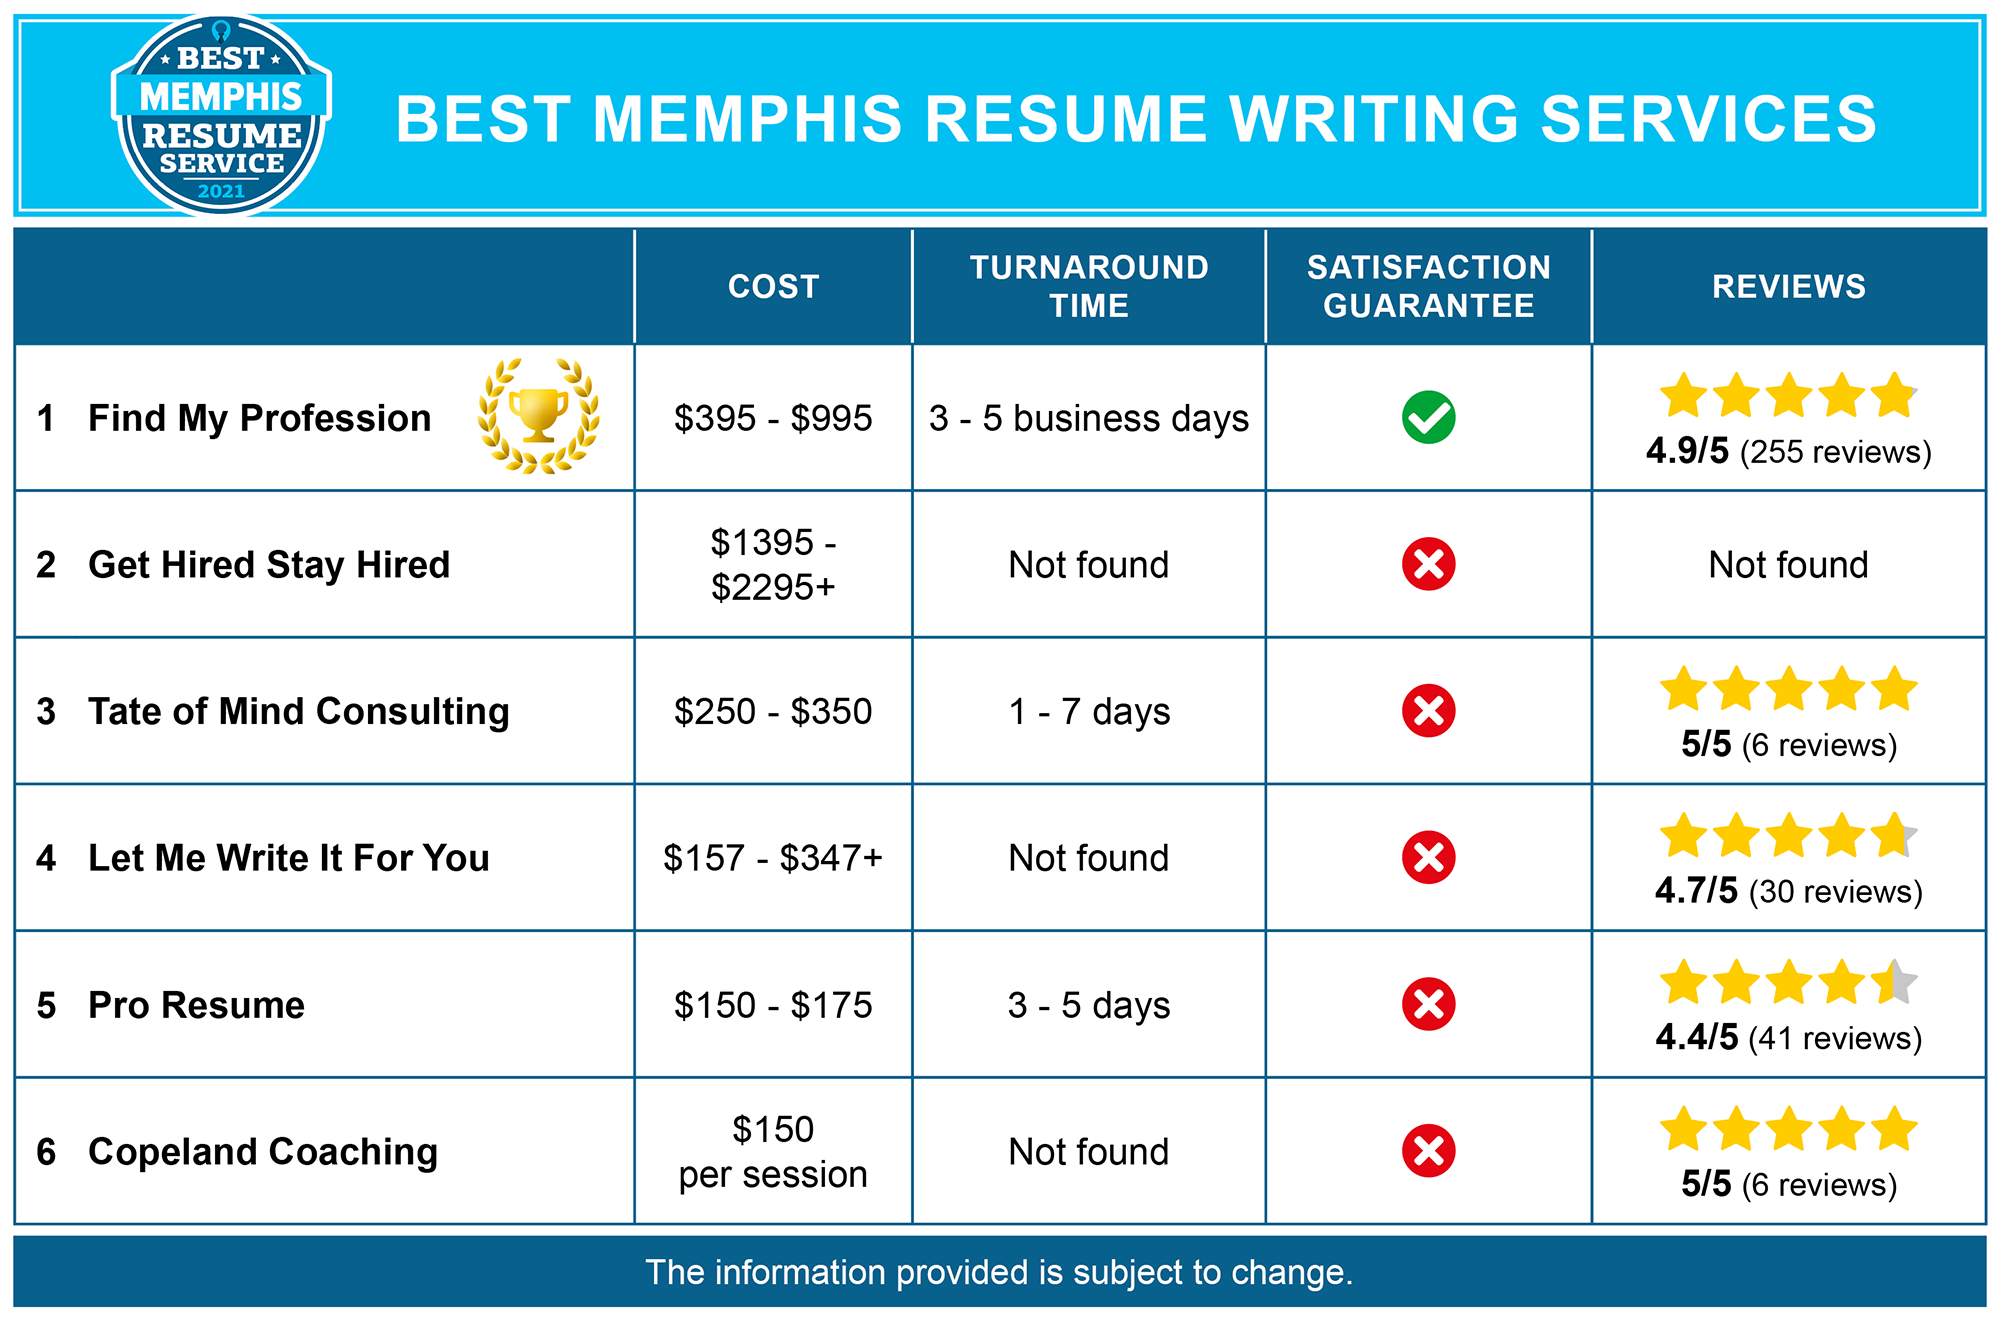 Best Memphis Resume Writing Services